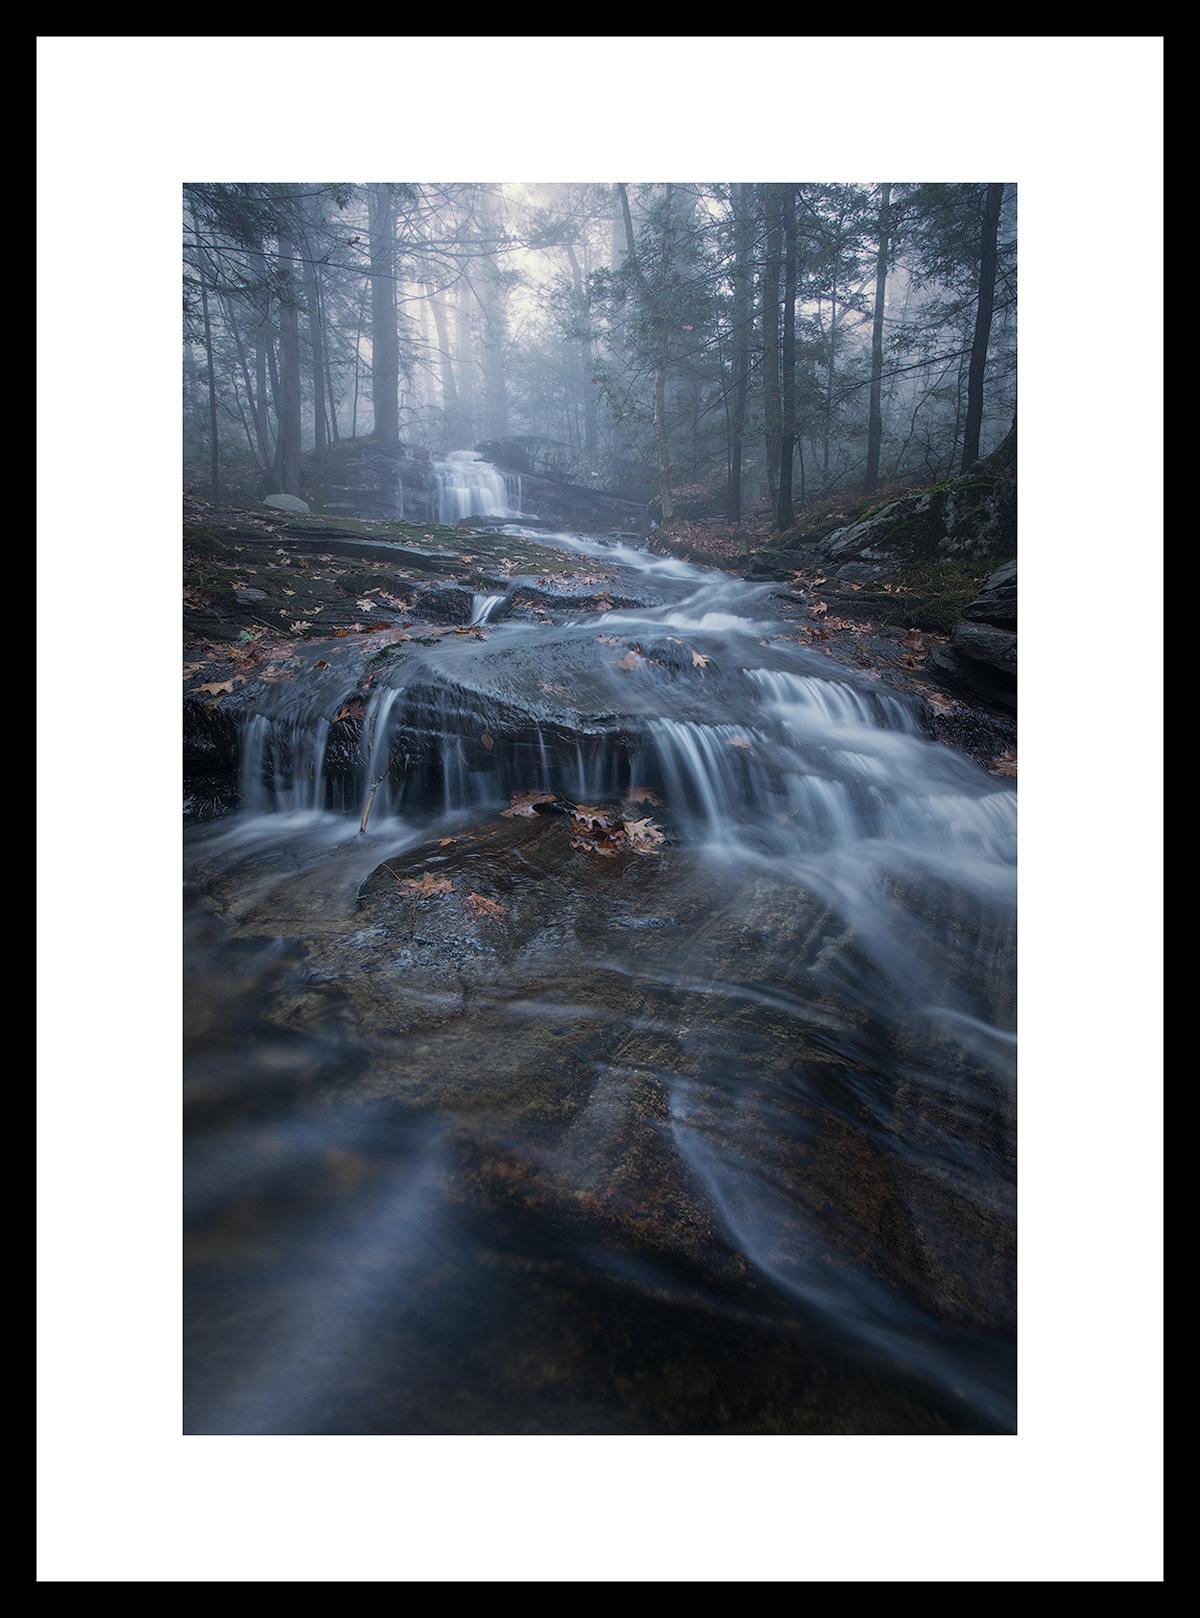 MATTED AND FRAMED PRINT - BLACK FRAME print preview